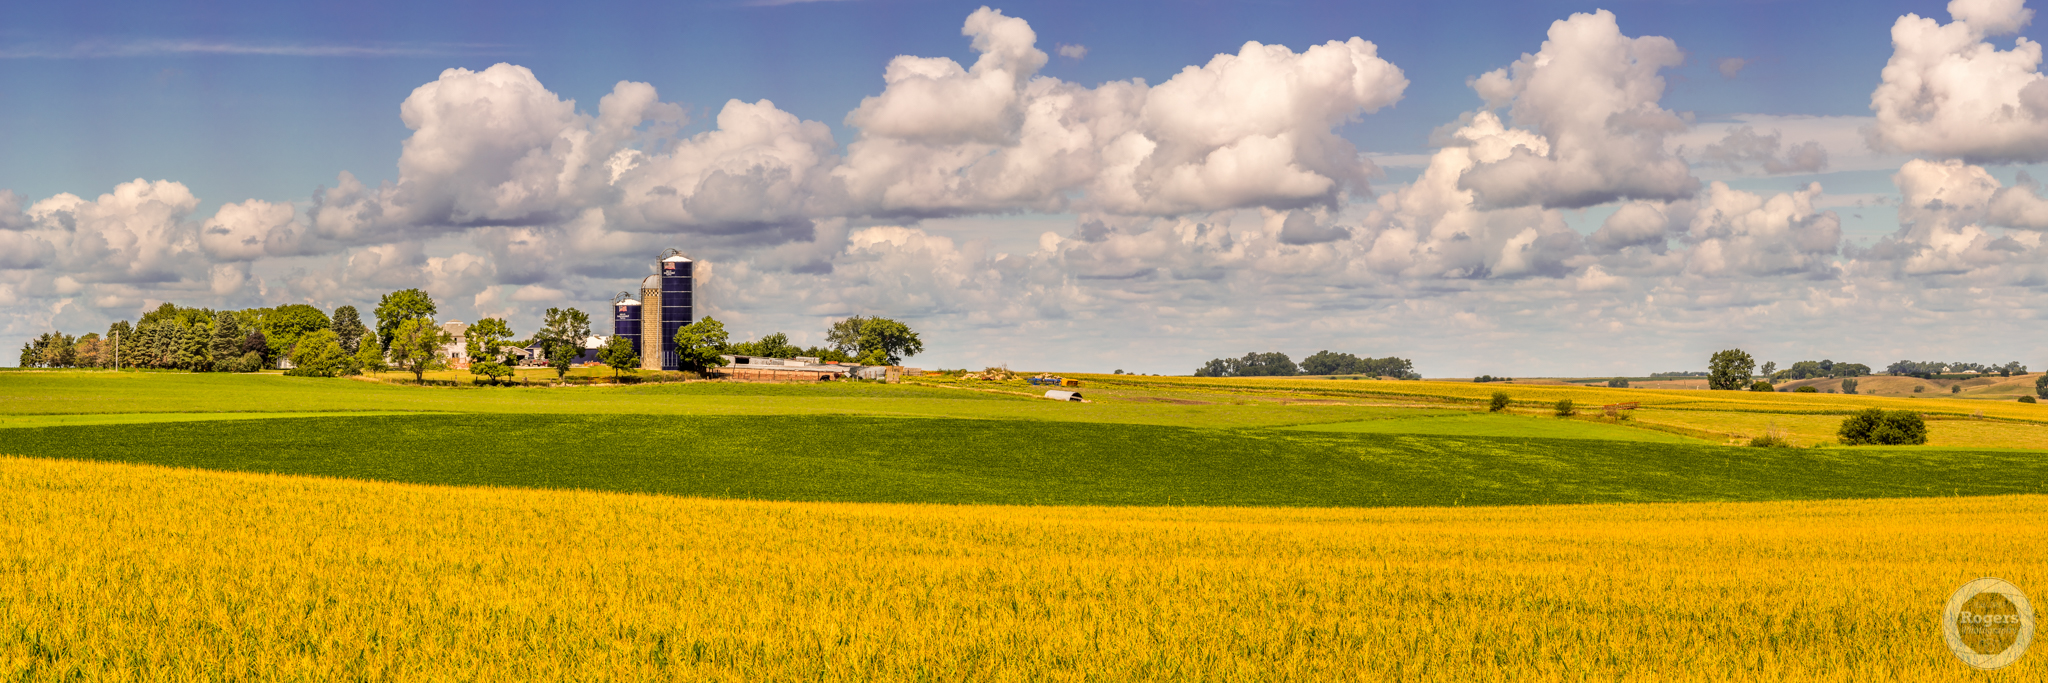 HIGTS: Quintessential Iowa Farmscape